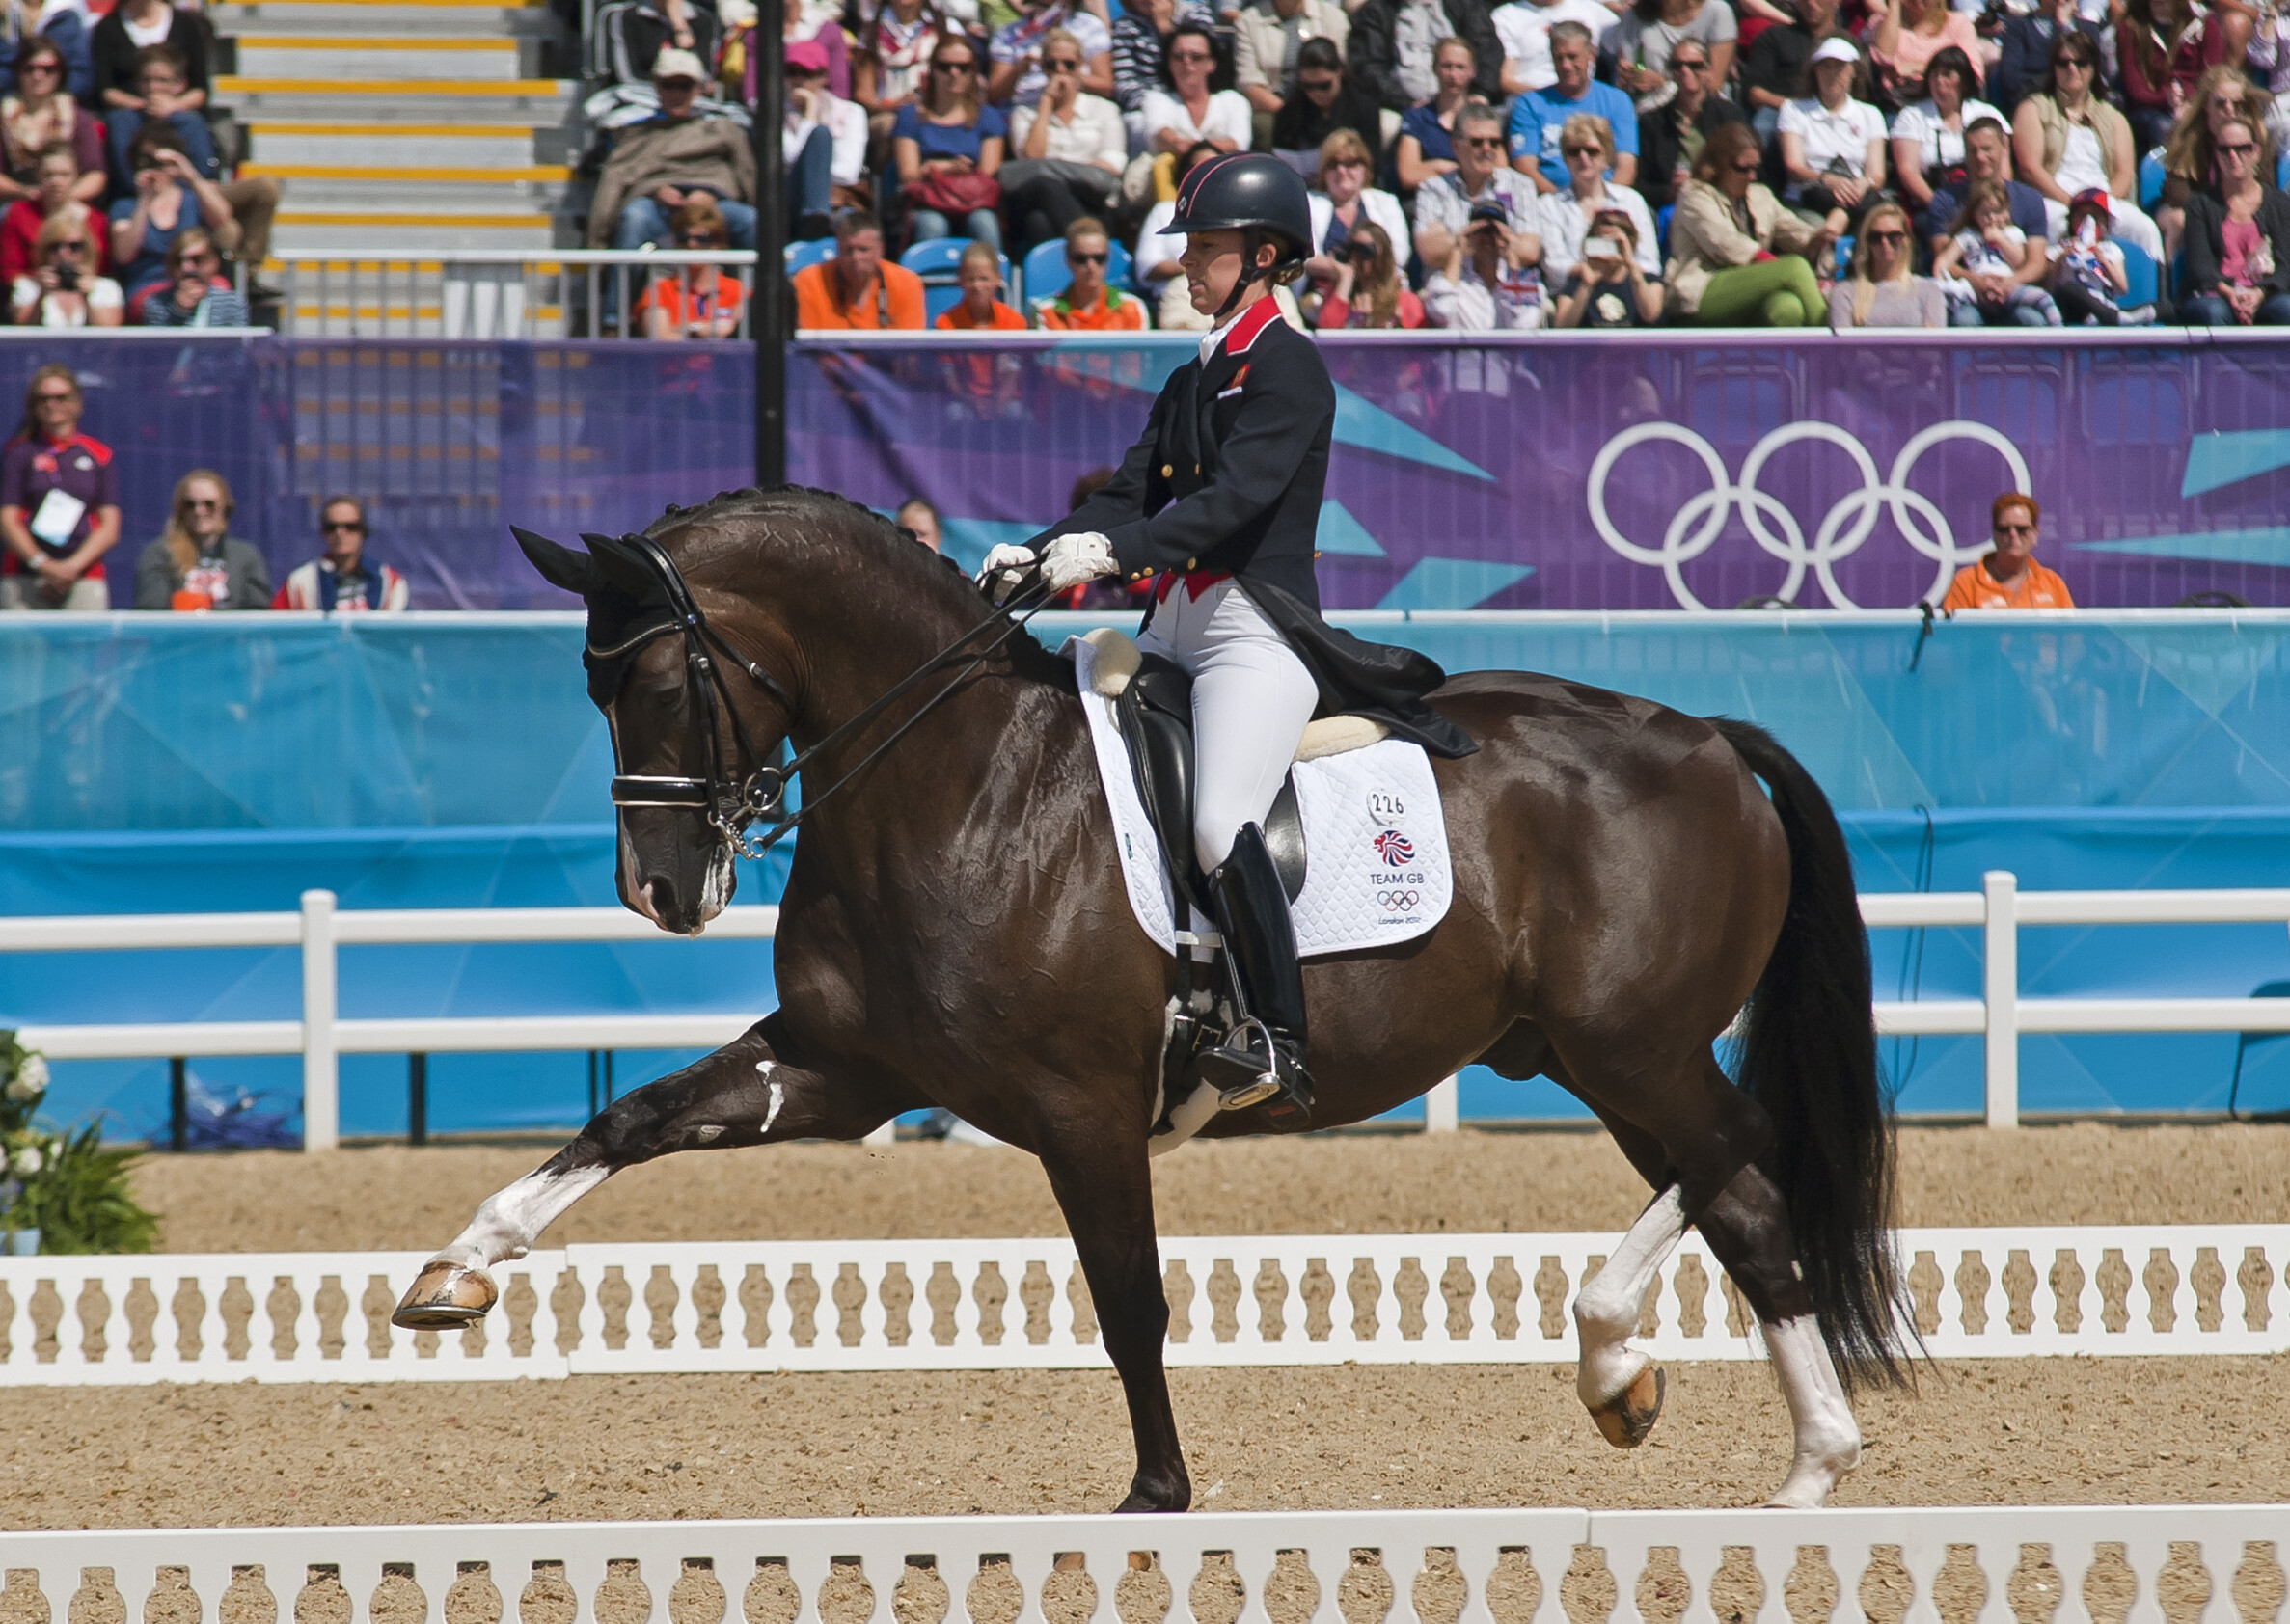 Charlotte and Valegro